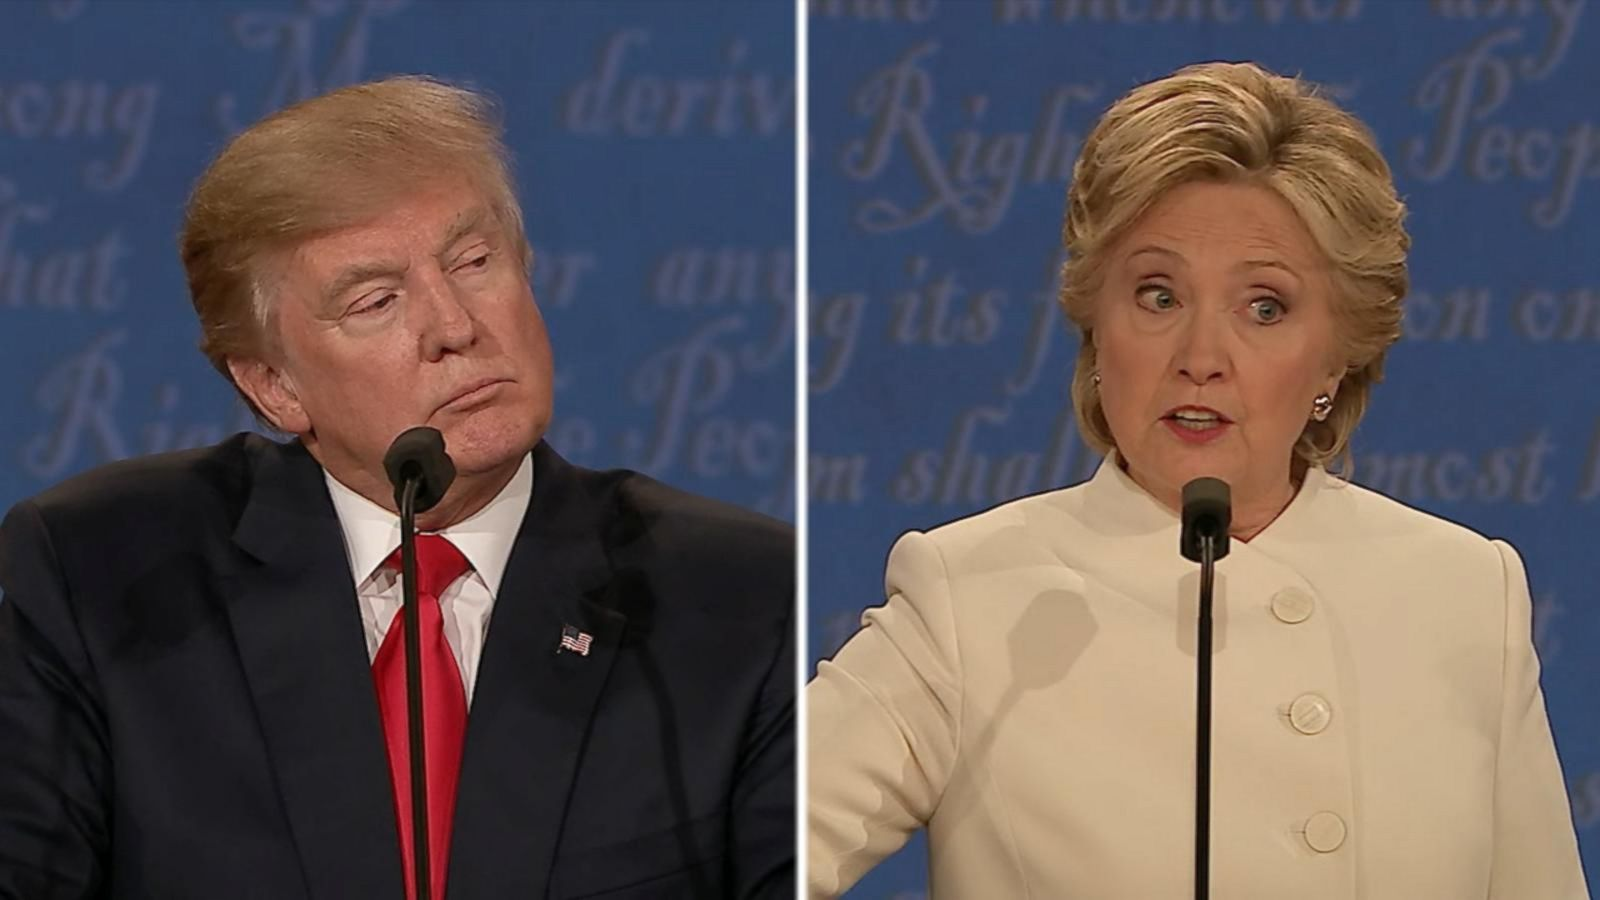 Hillary Clinton, Donald Trump Clash in Final Presidential Debate